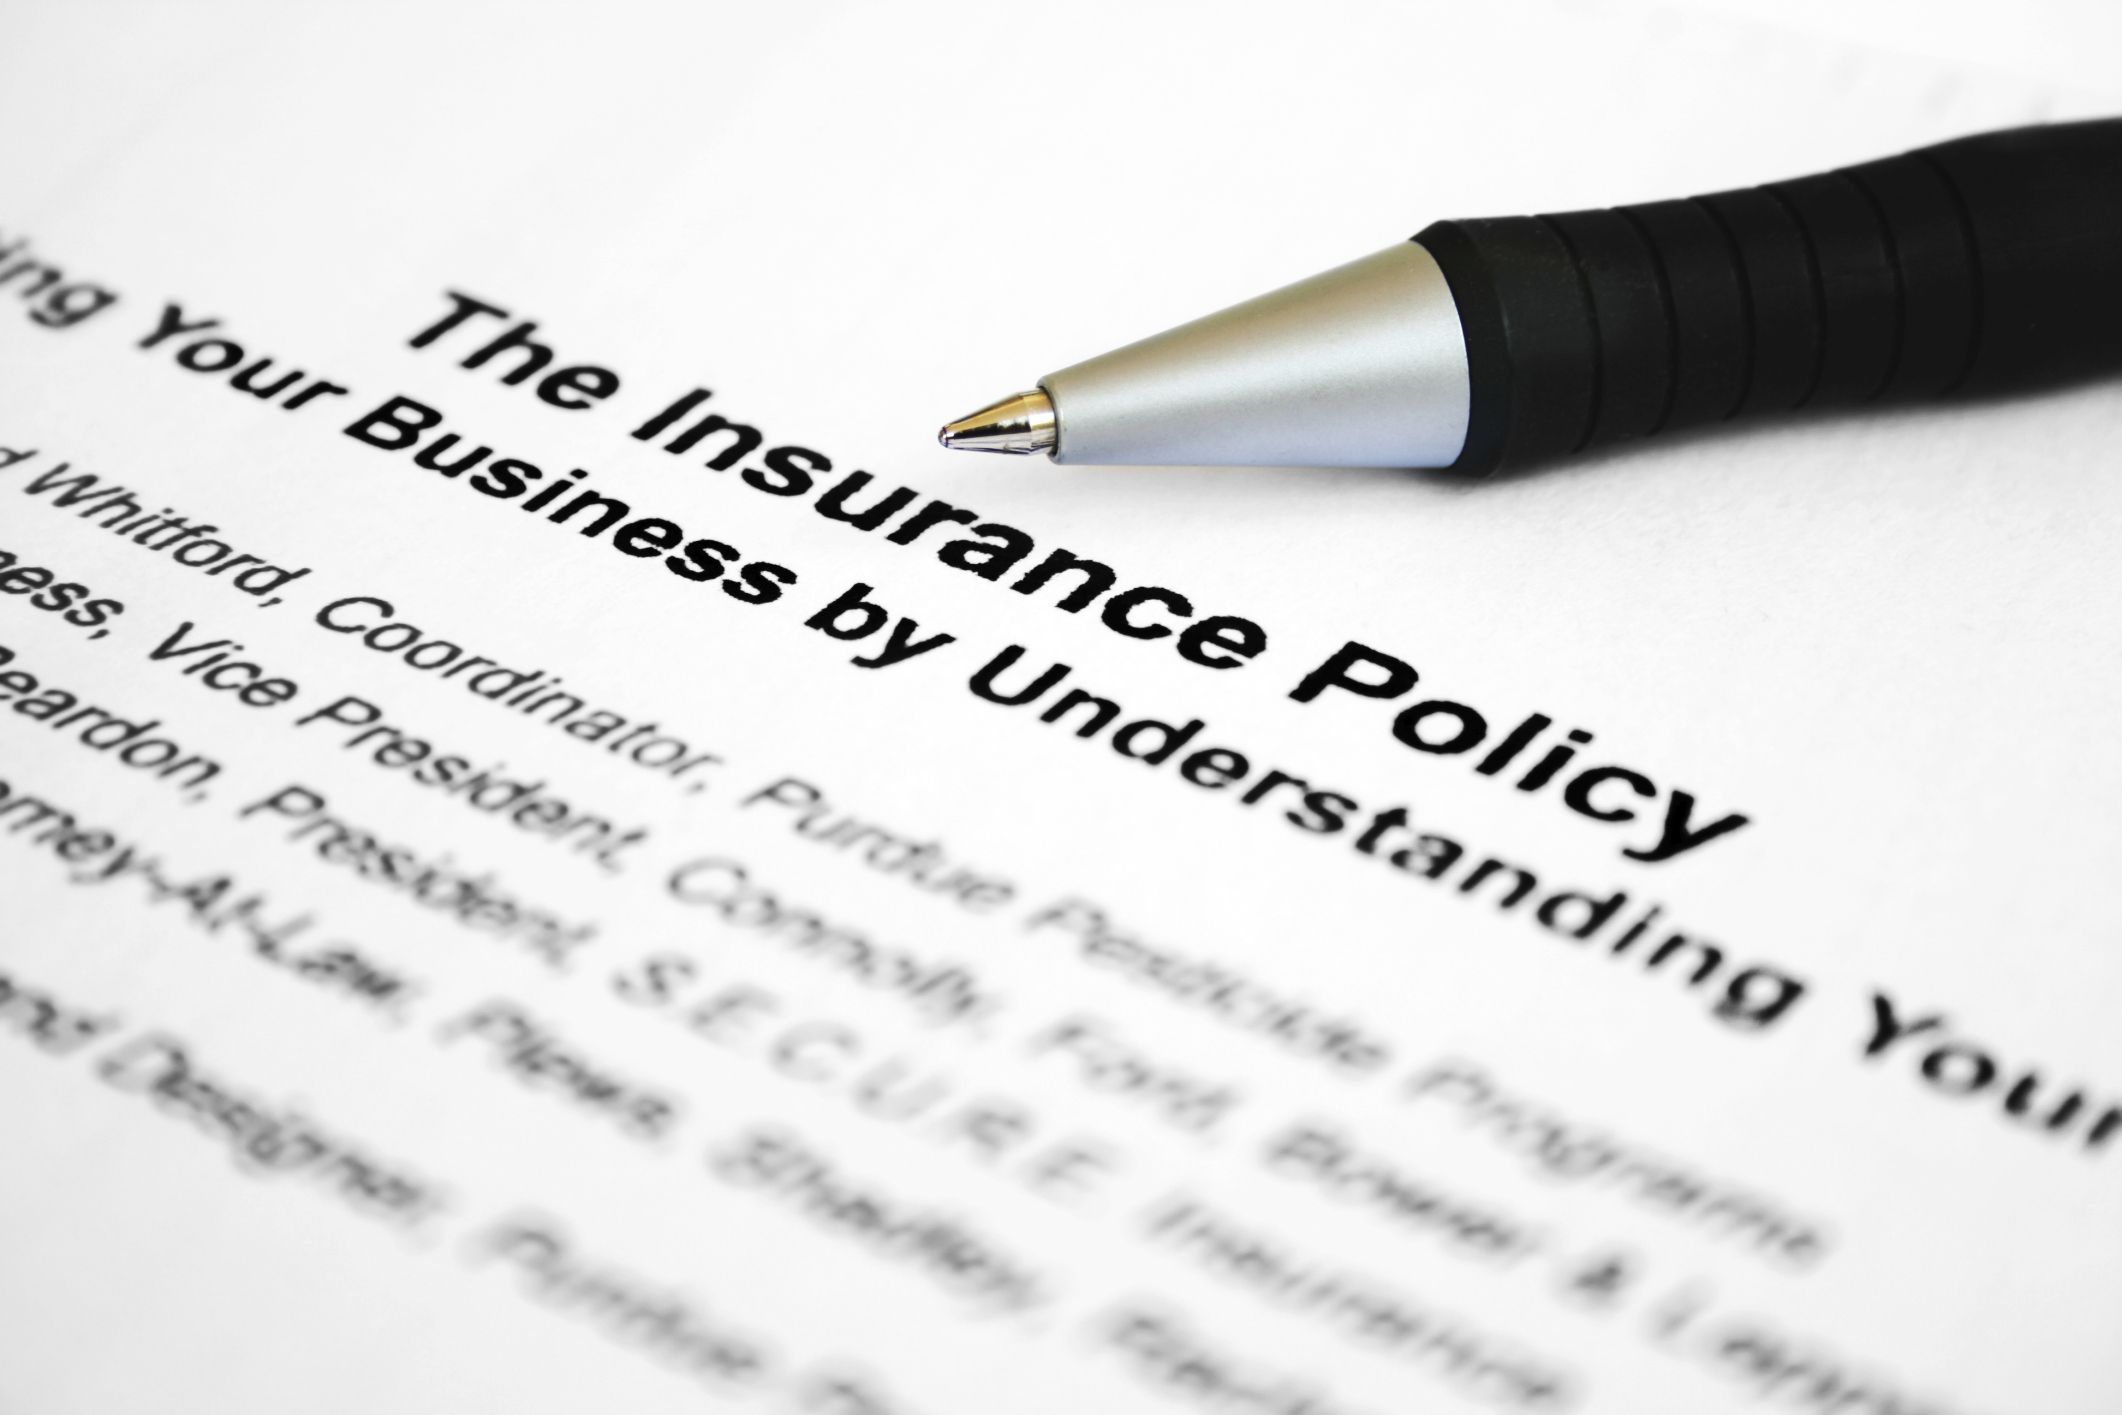 Insurance policy and writing pen